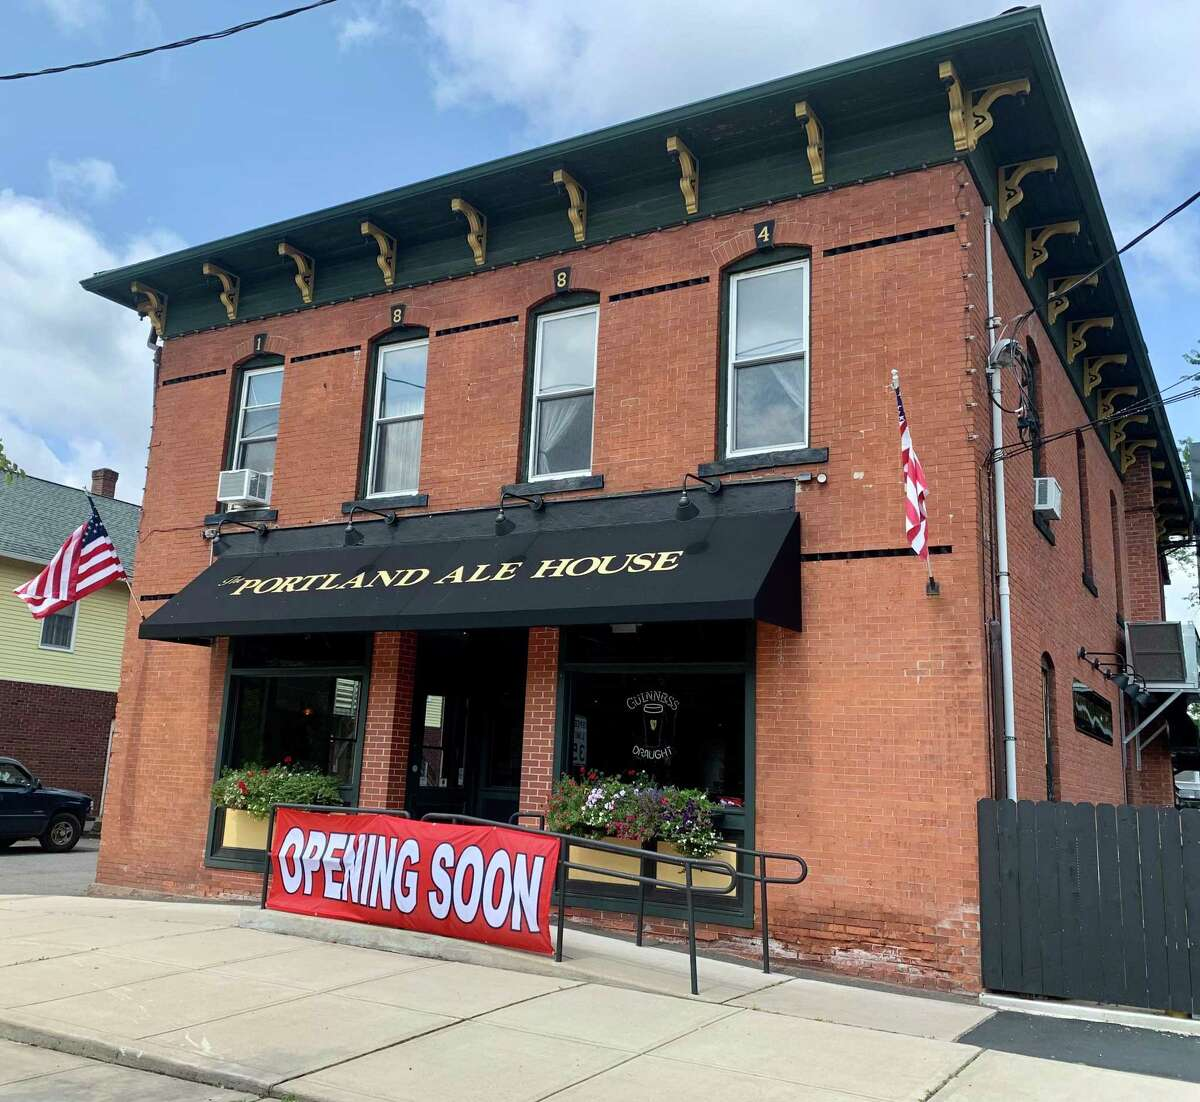 The Portland Ale House, which occupies the building that used to house the Portland Restaurant at 188 Main St., officially opened Thursday.